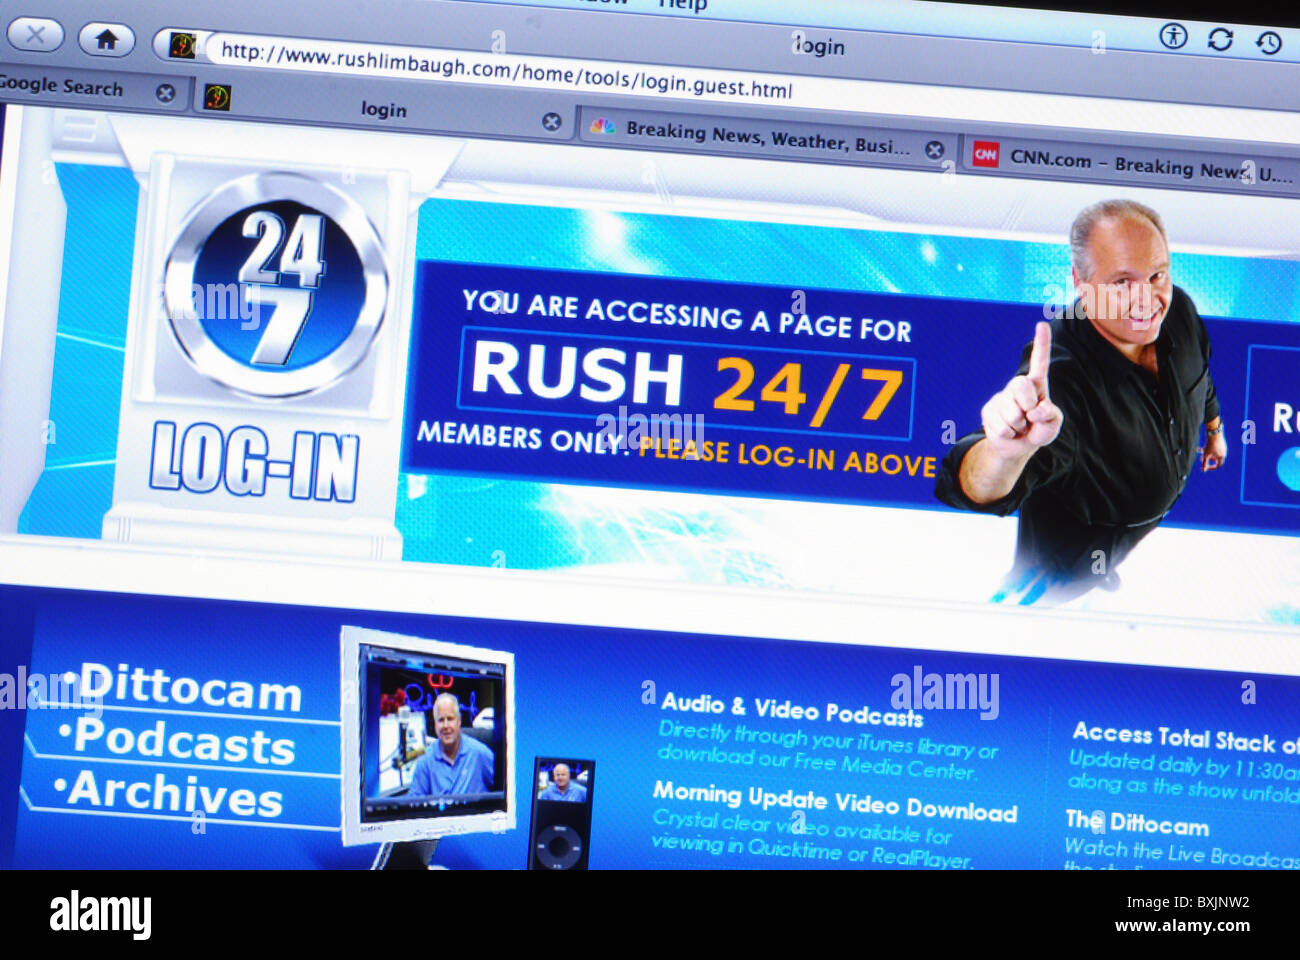 Members only entrance on American conservative commentator Rush Limbaugh's website - Stock Image